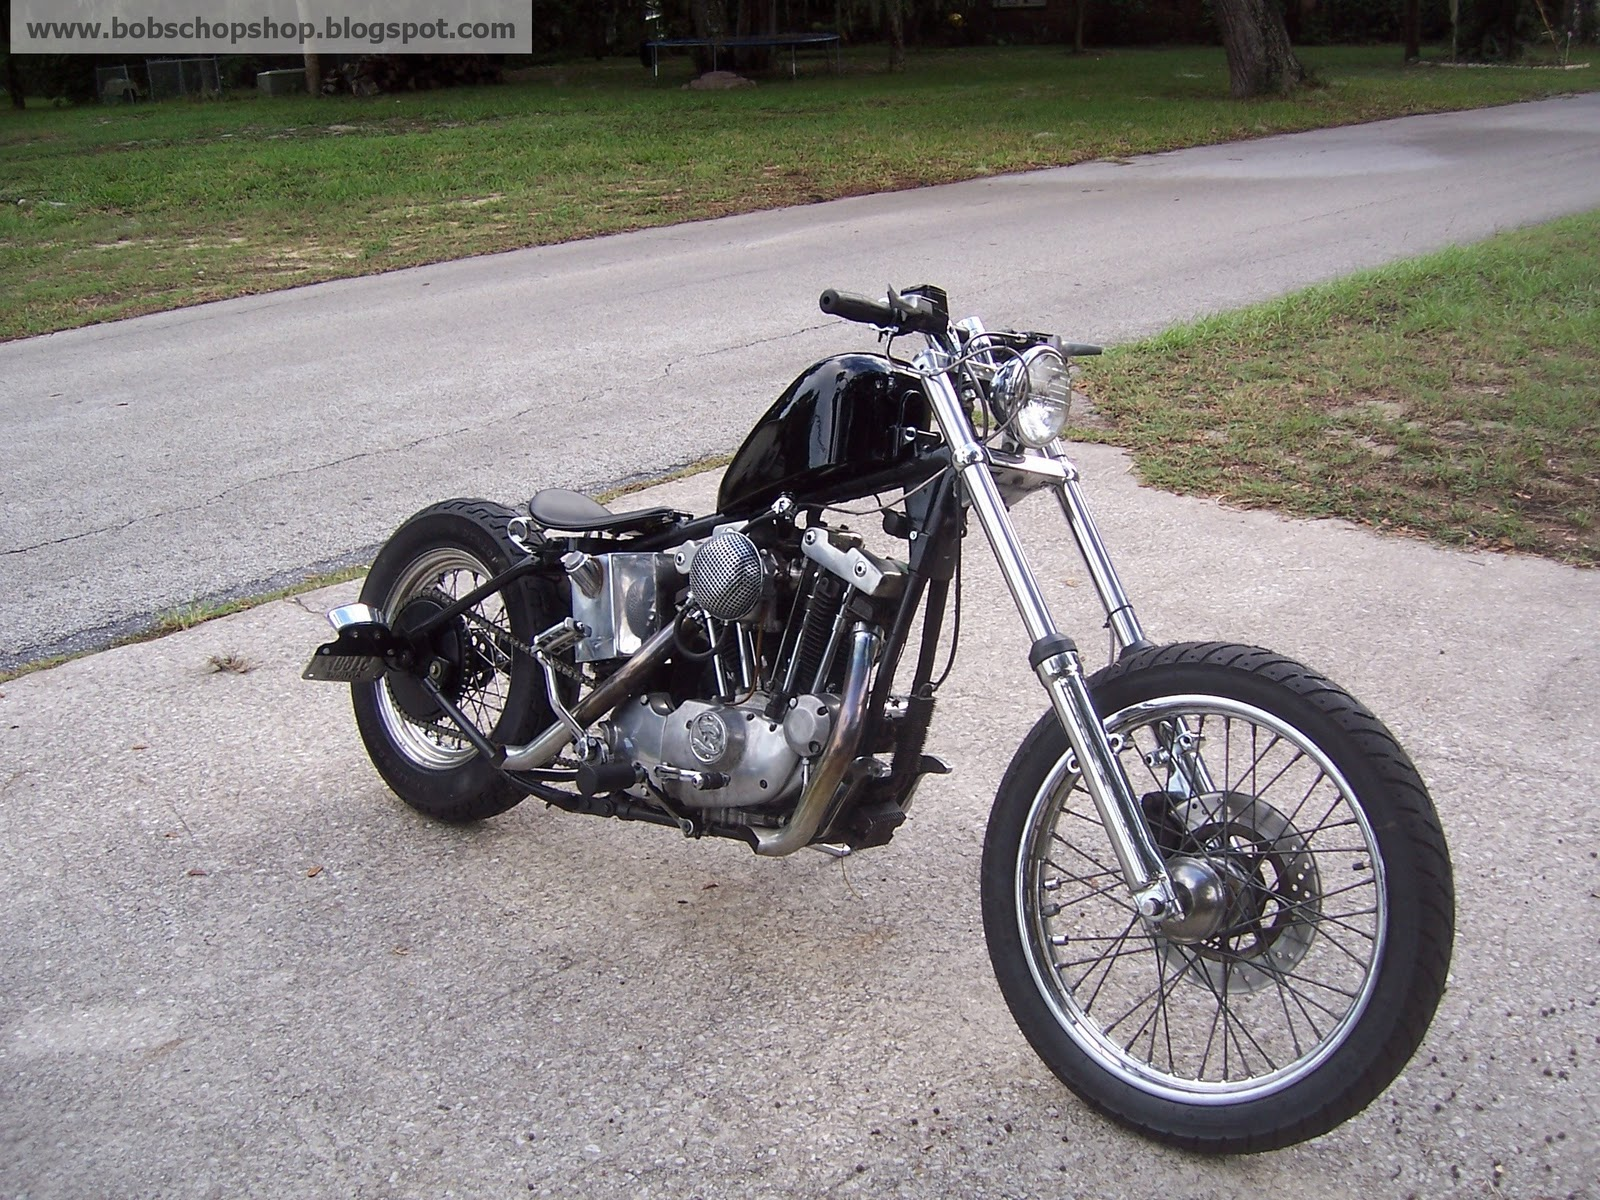 BOBS CHOP SHOP: 1973 HARLEY IRONHEAD SPORTSTER CHOPPER / BOBBER PROJECT